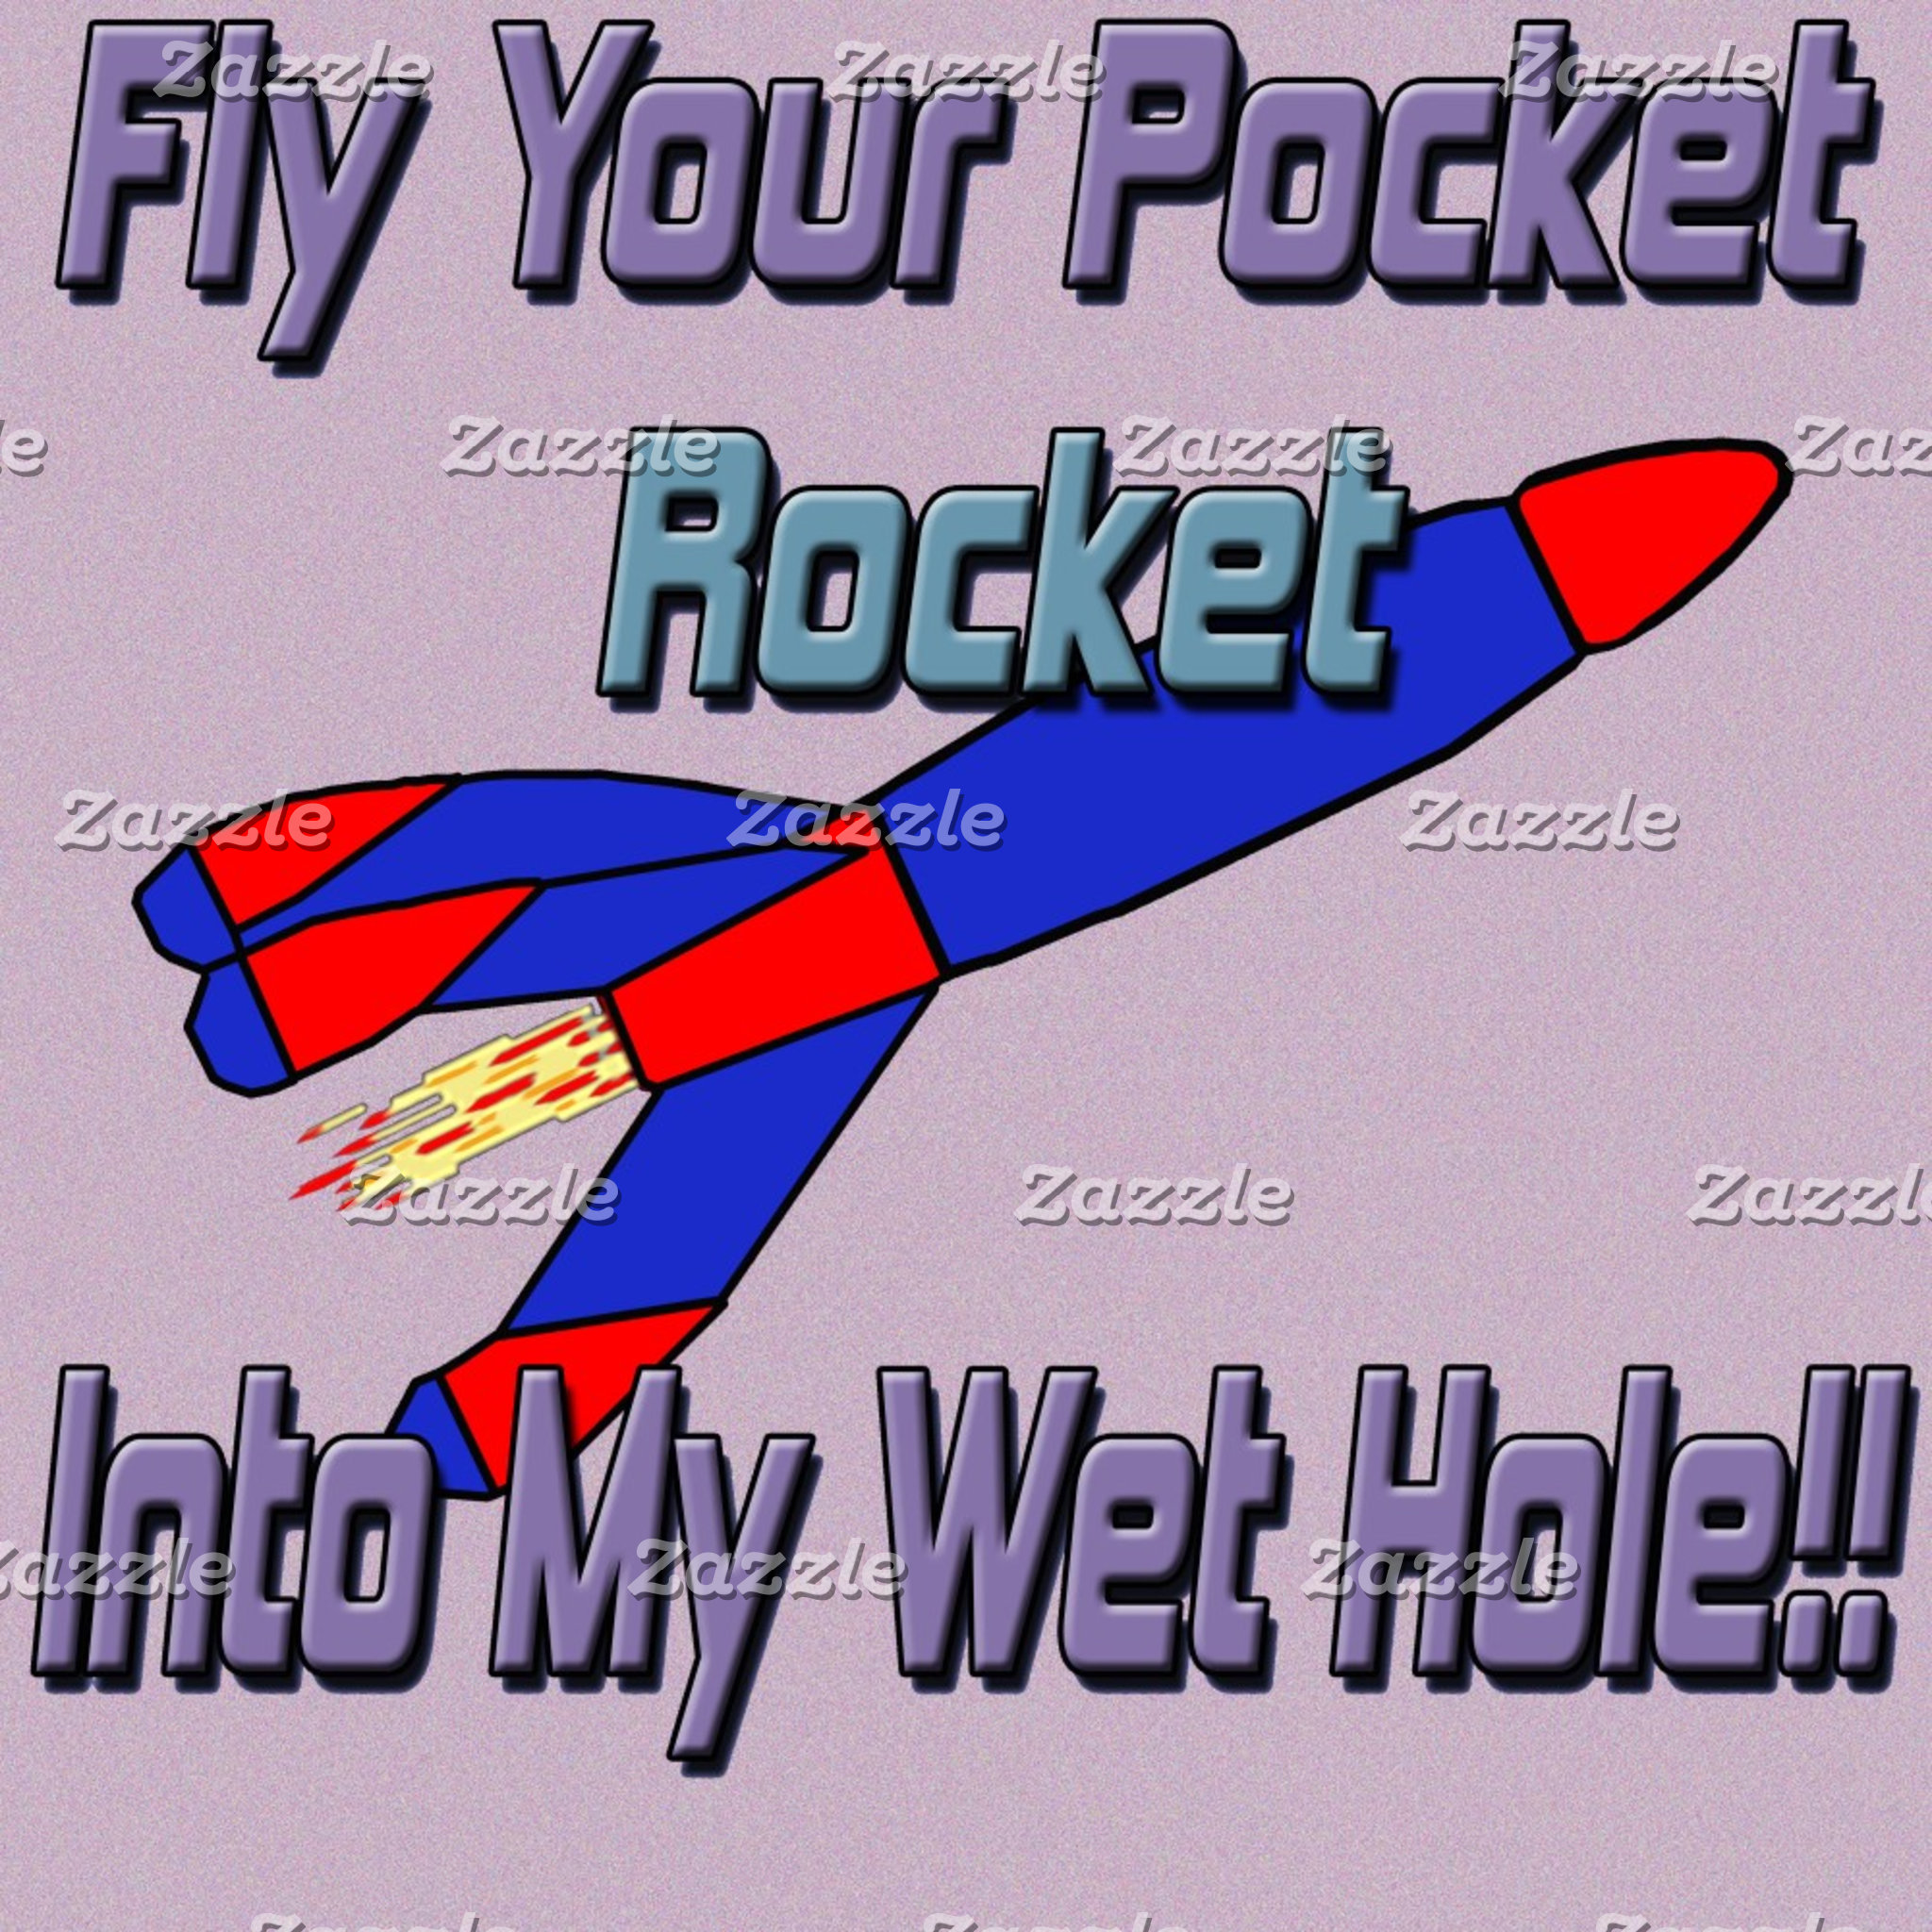 Fly Your Pocket Rocket